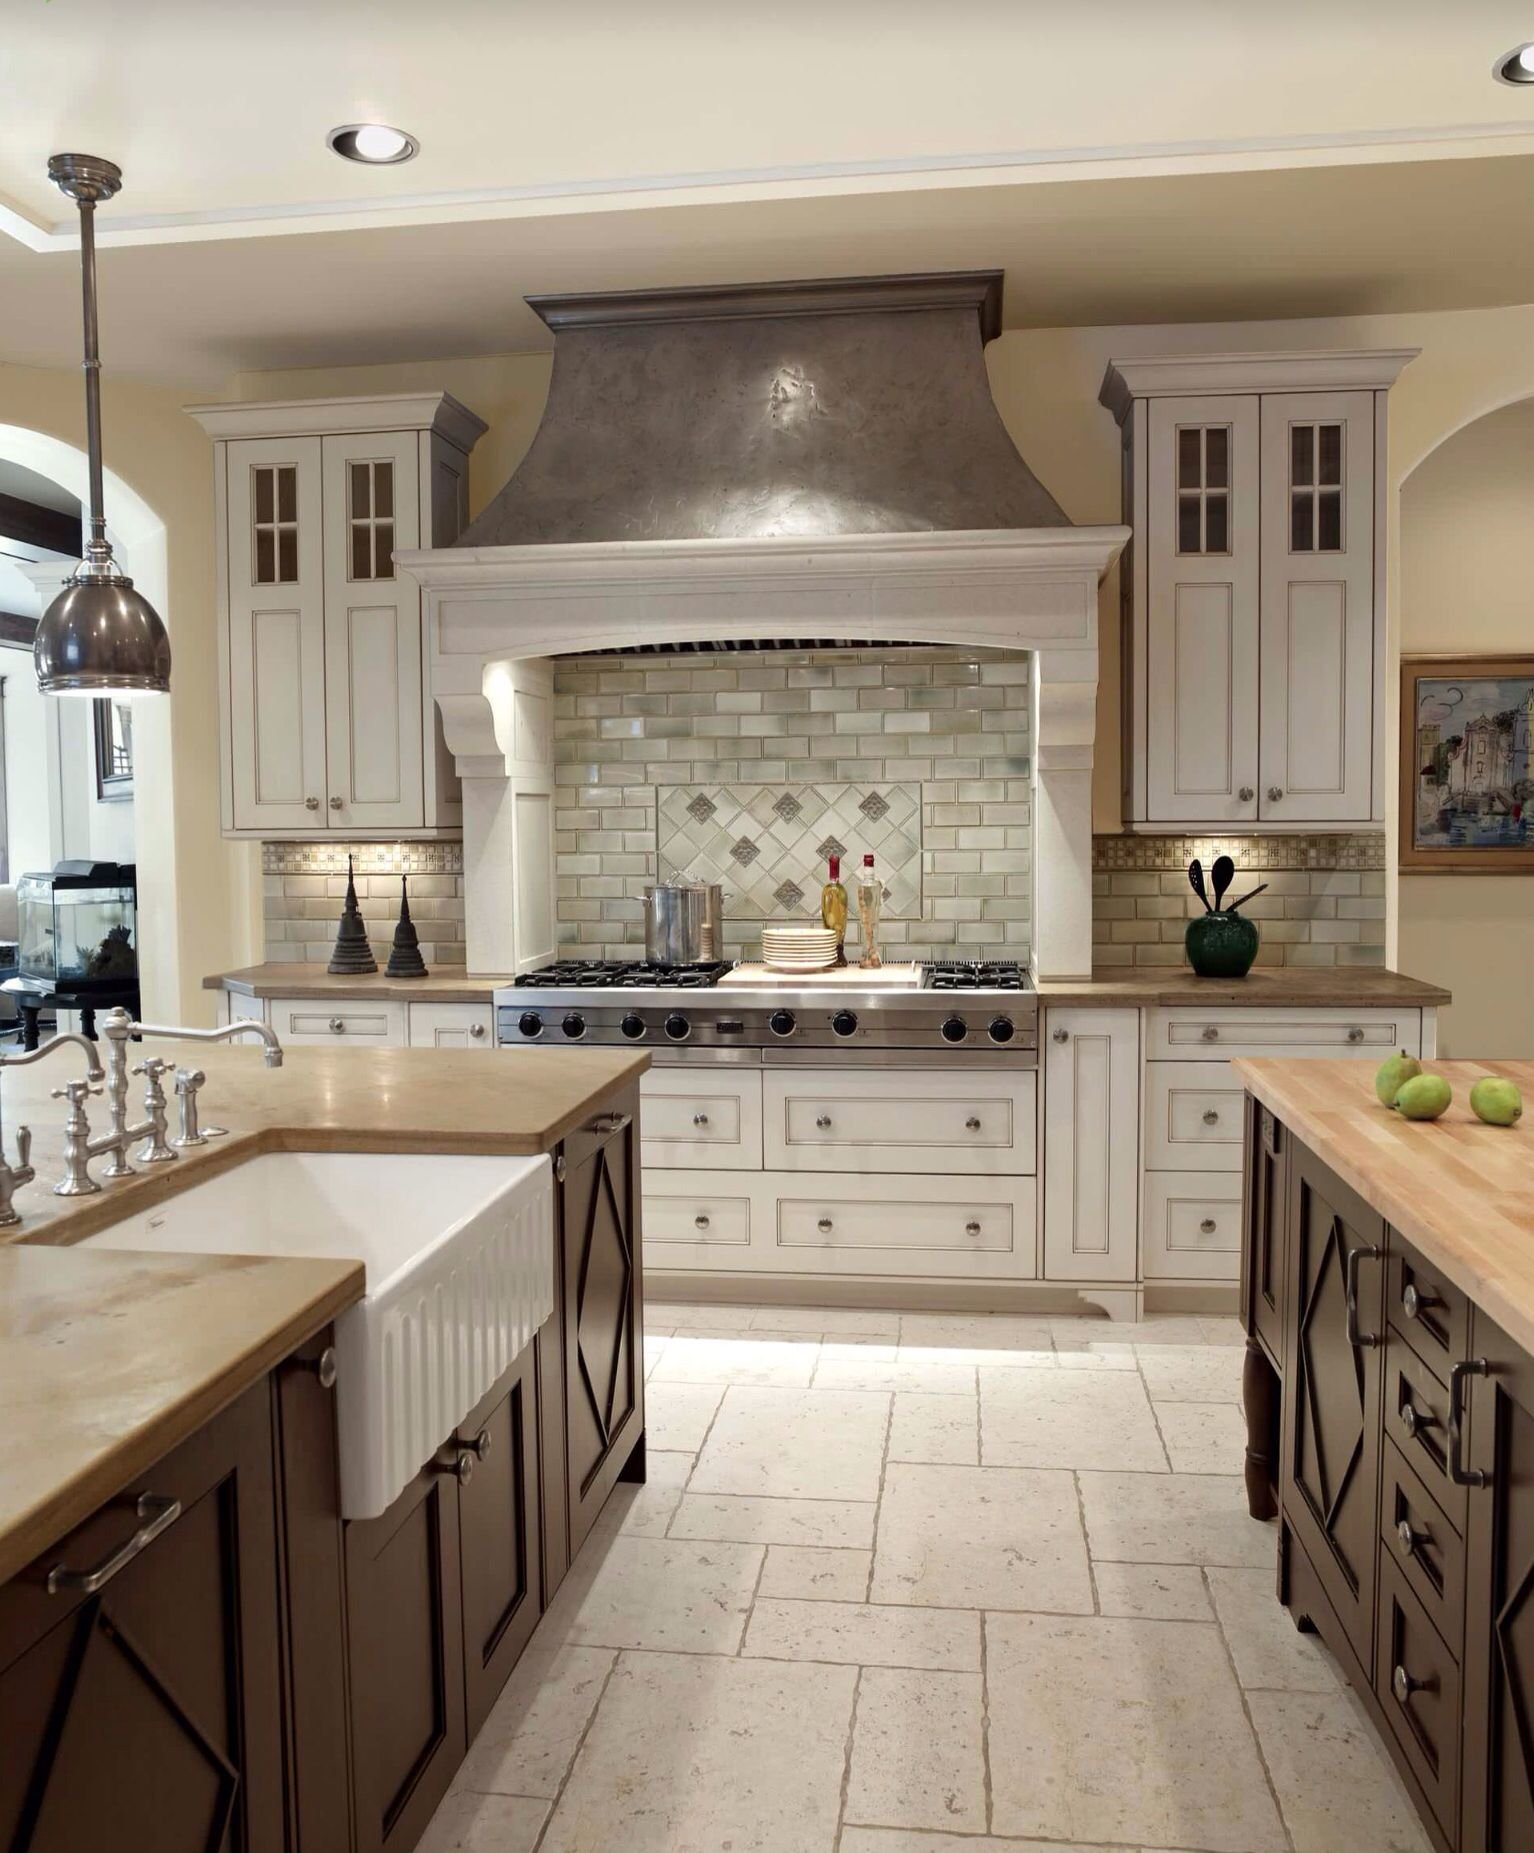 Light Painted Cabinets Kitchen: Wall Cabinets Painted In A Light Color And Island In